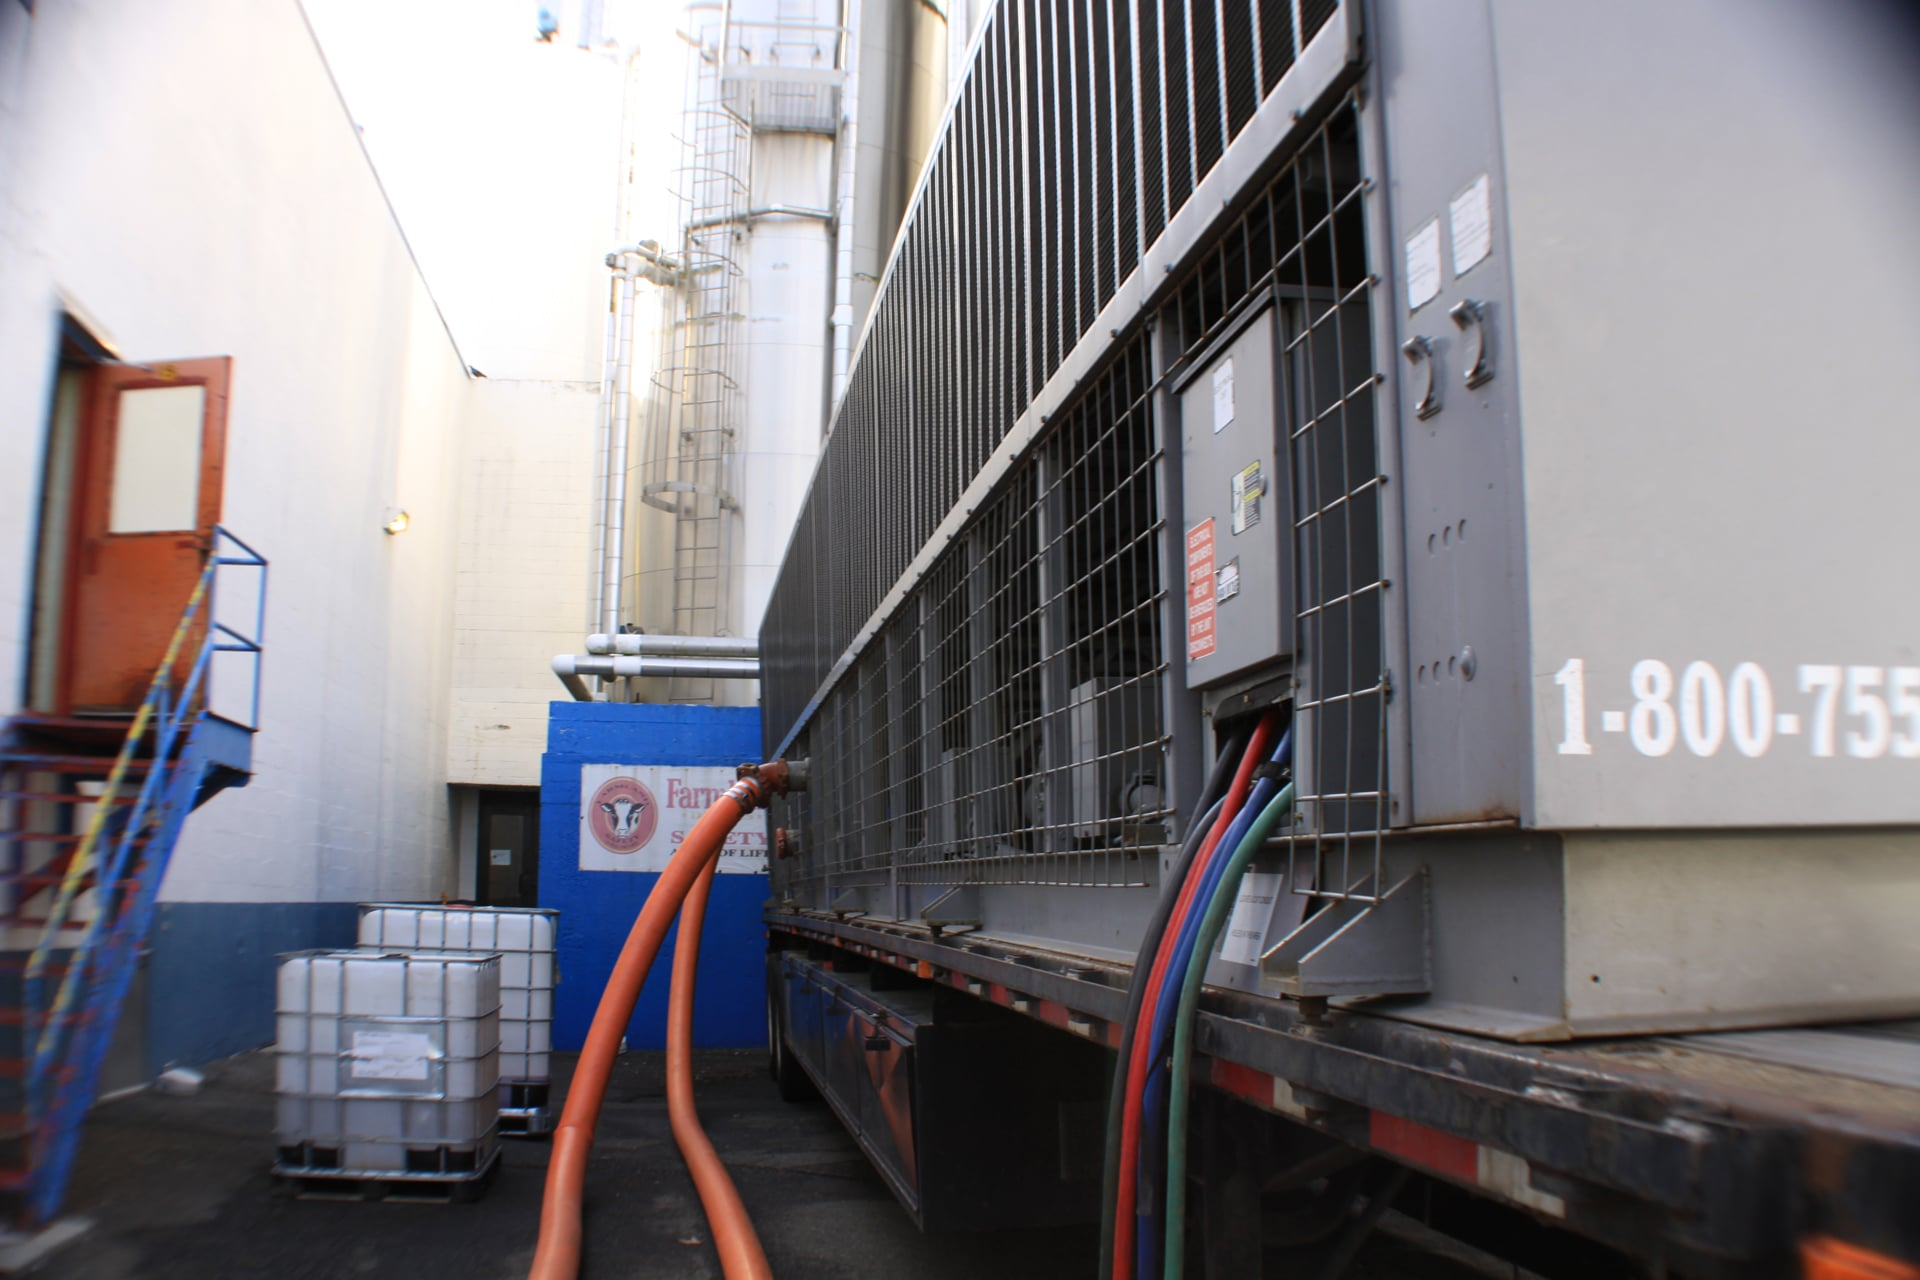 Temporary Chiller Middletown DE, Air Cooled Chiller Rental Middletown DE